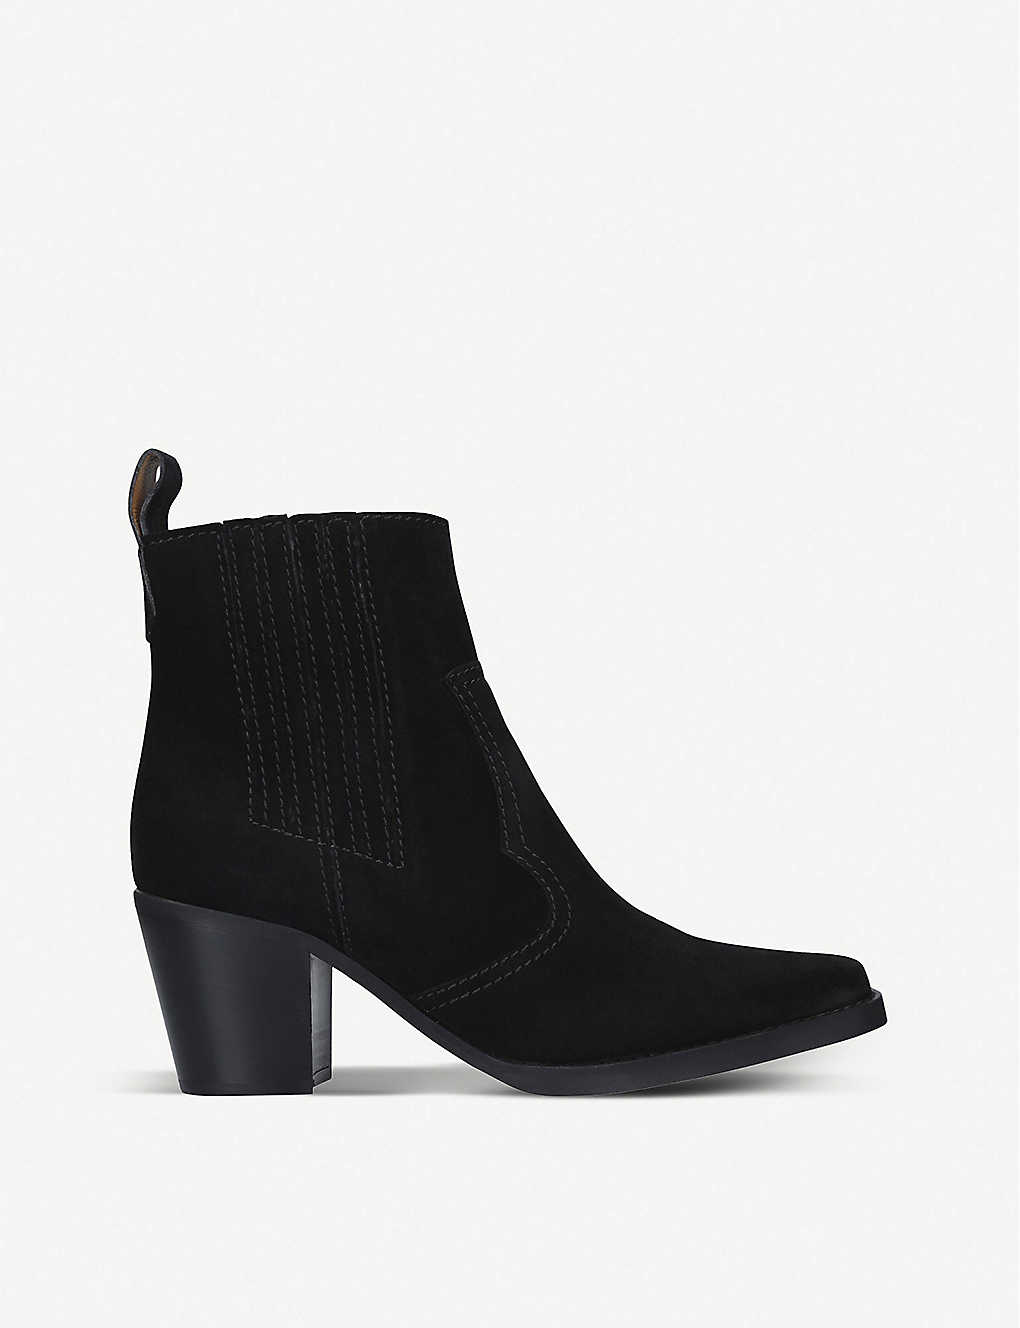 GANNI: Western leather heeled ankle boots